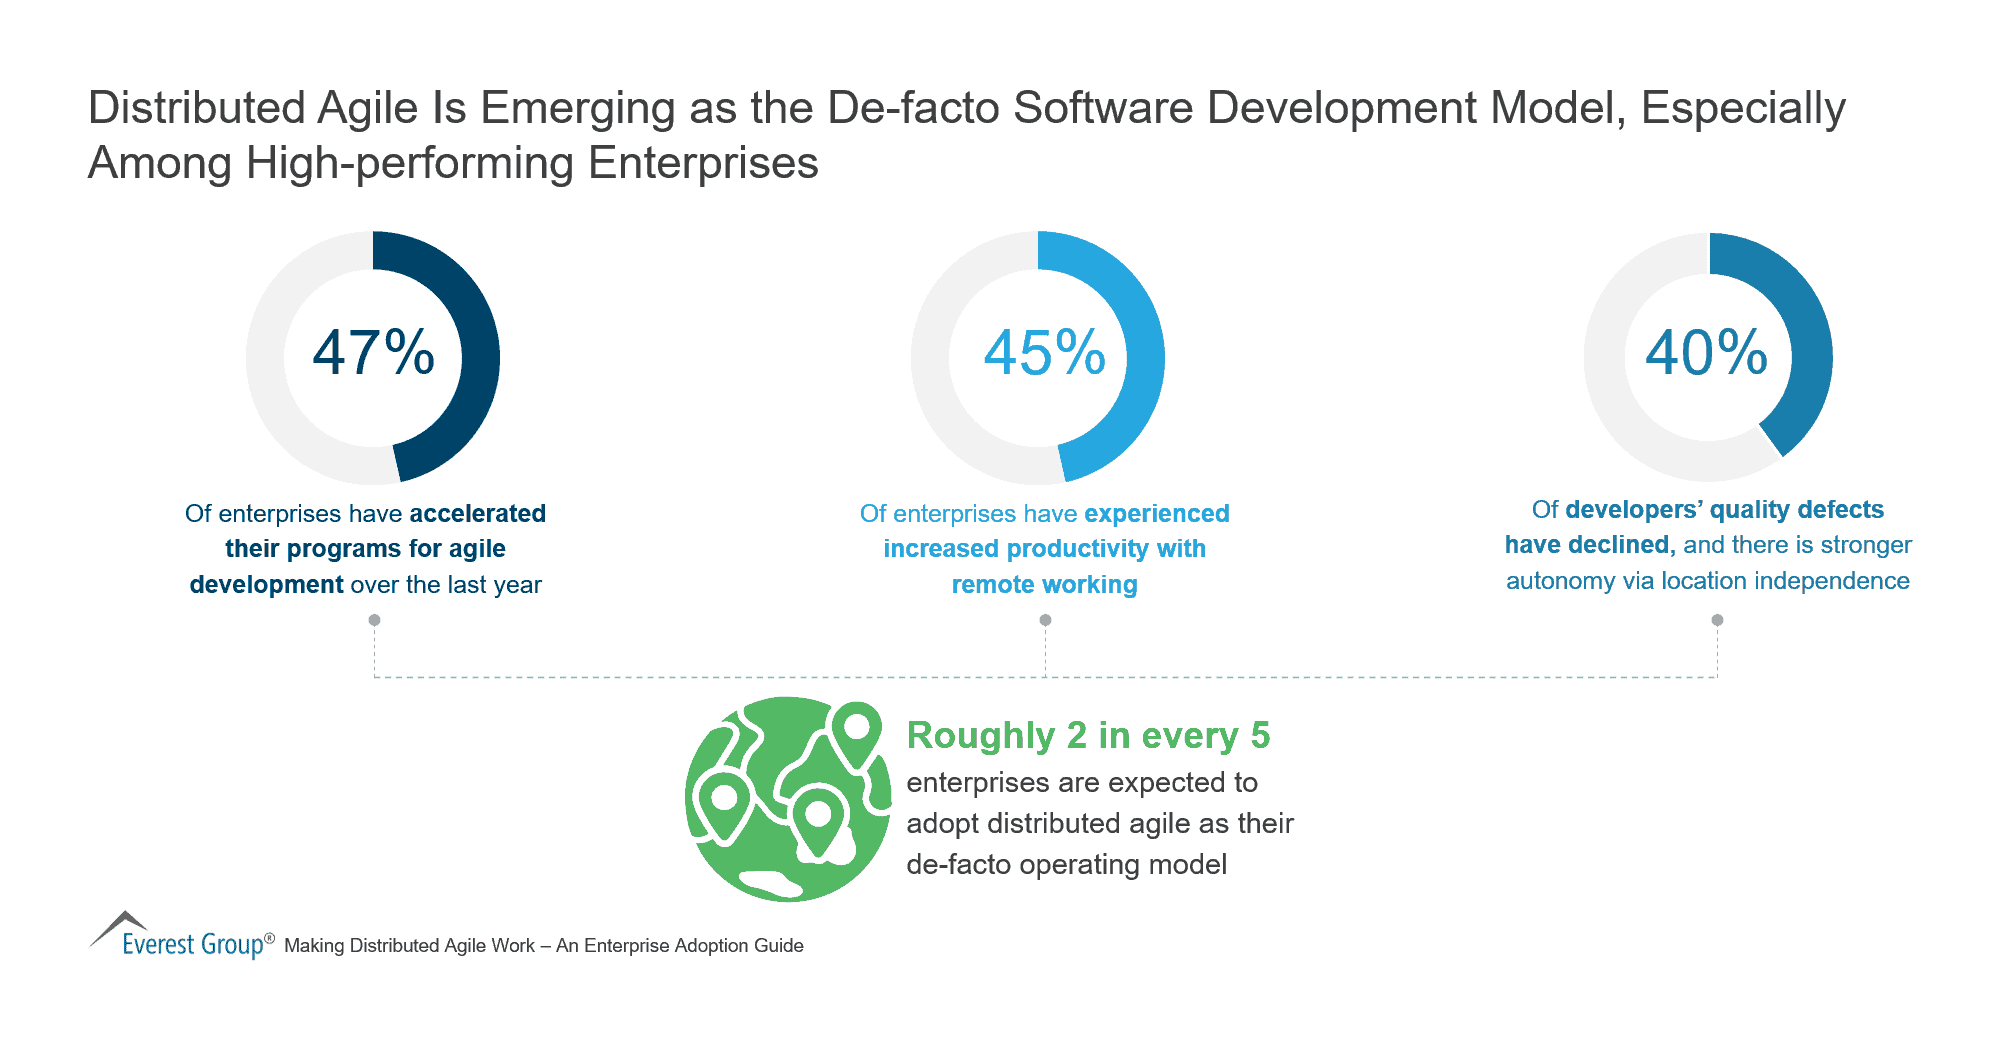 Distributed Agile Is Emerging as the De facto Software Development Model